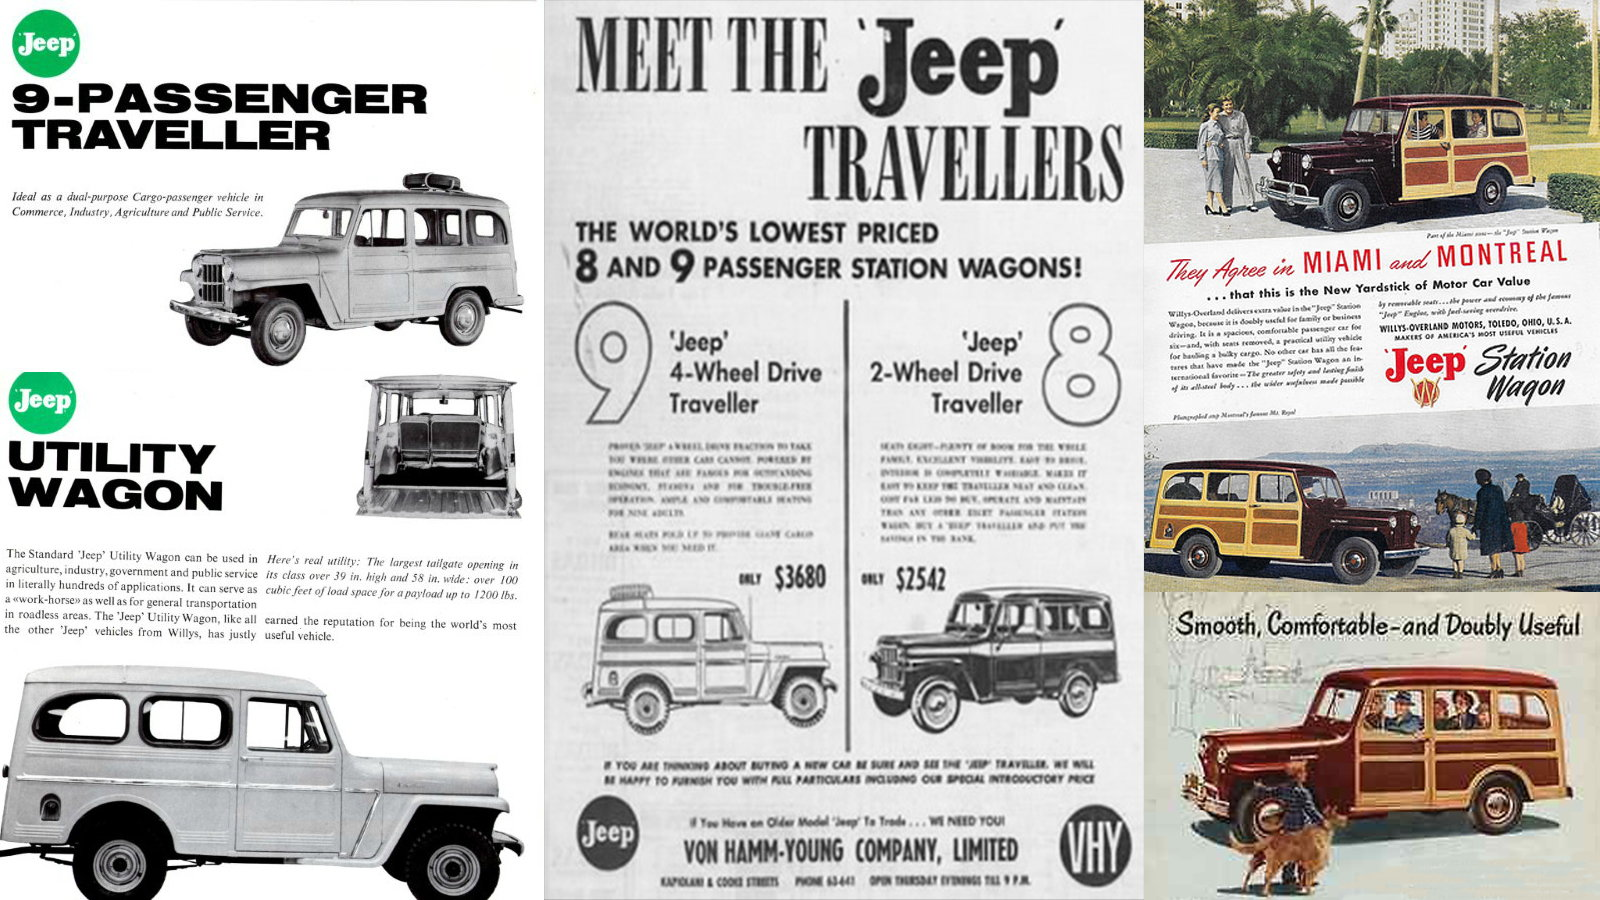 1963 Jeep Willys Traveller is a Crown Jewel at SEMA